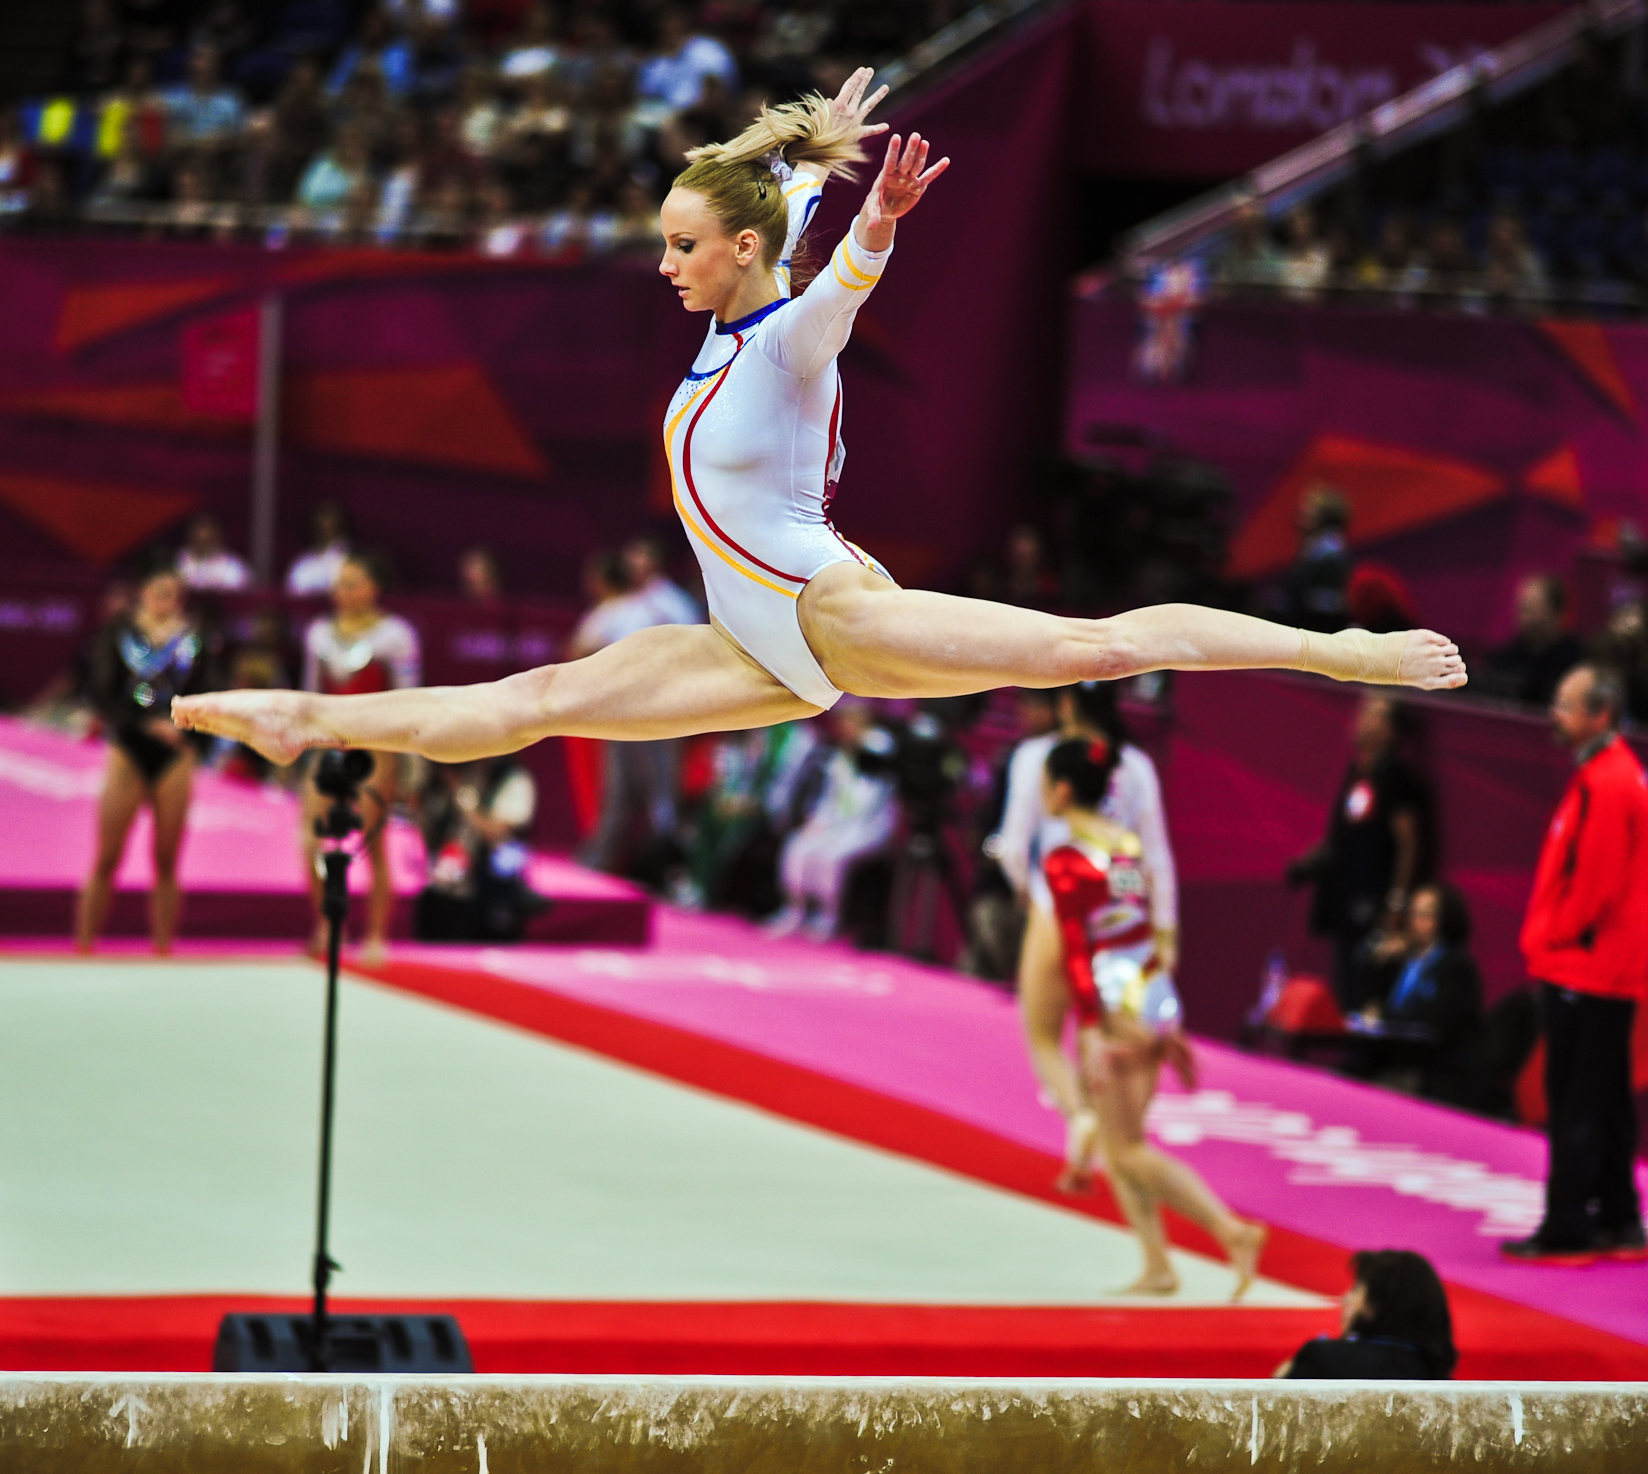 Gymnastics Wallpaper And Background Image